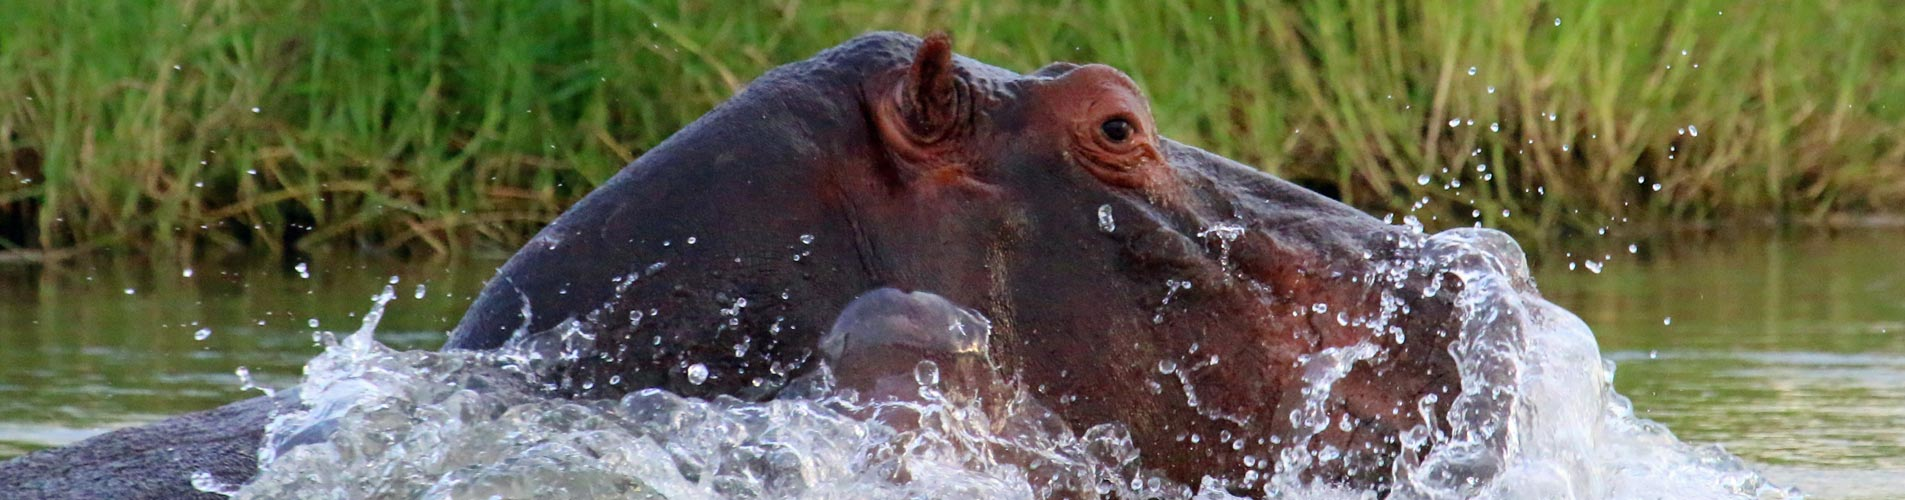 Hippo Blowing Bubbles in Zimbabwe